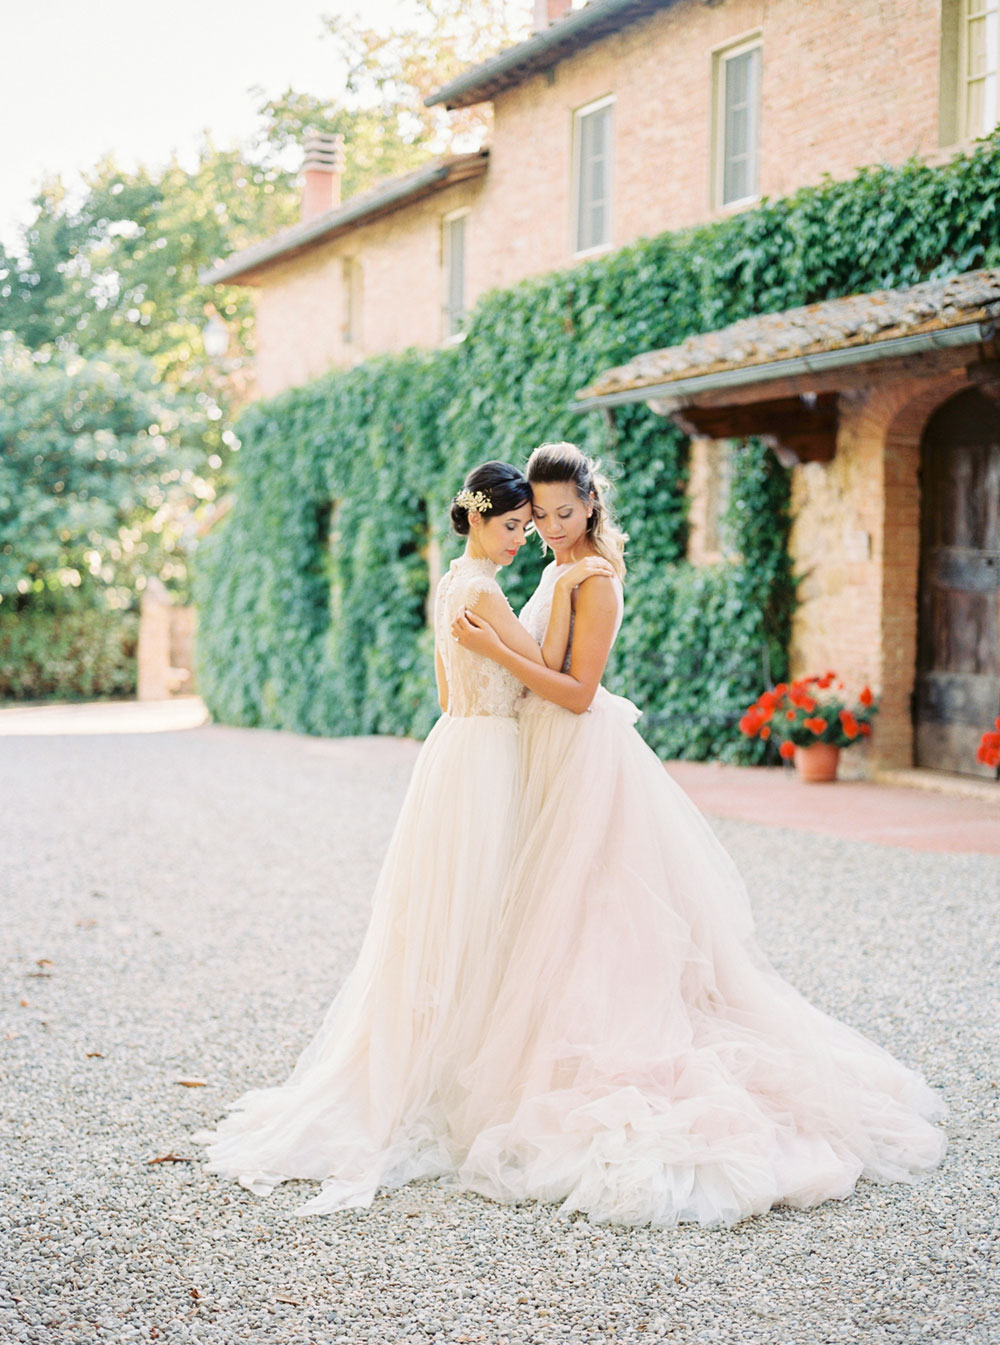 Linari-Tuscany-Elopement-Courtney-Michaela-158